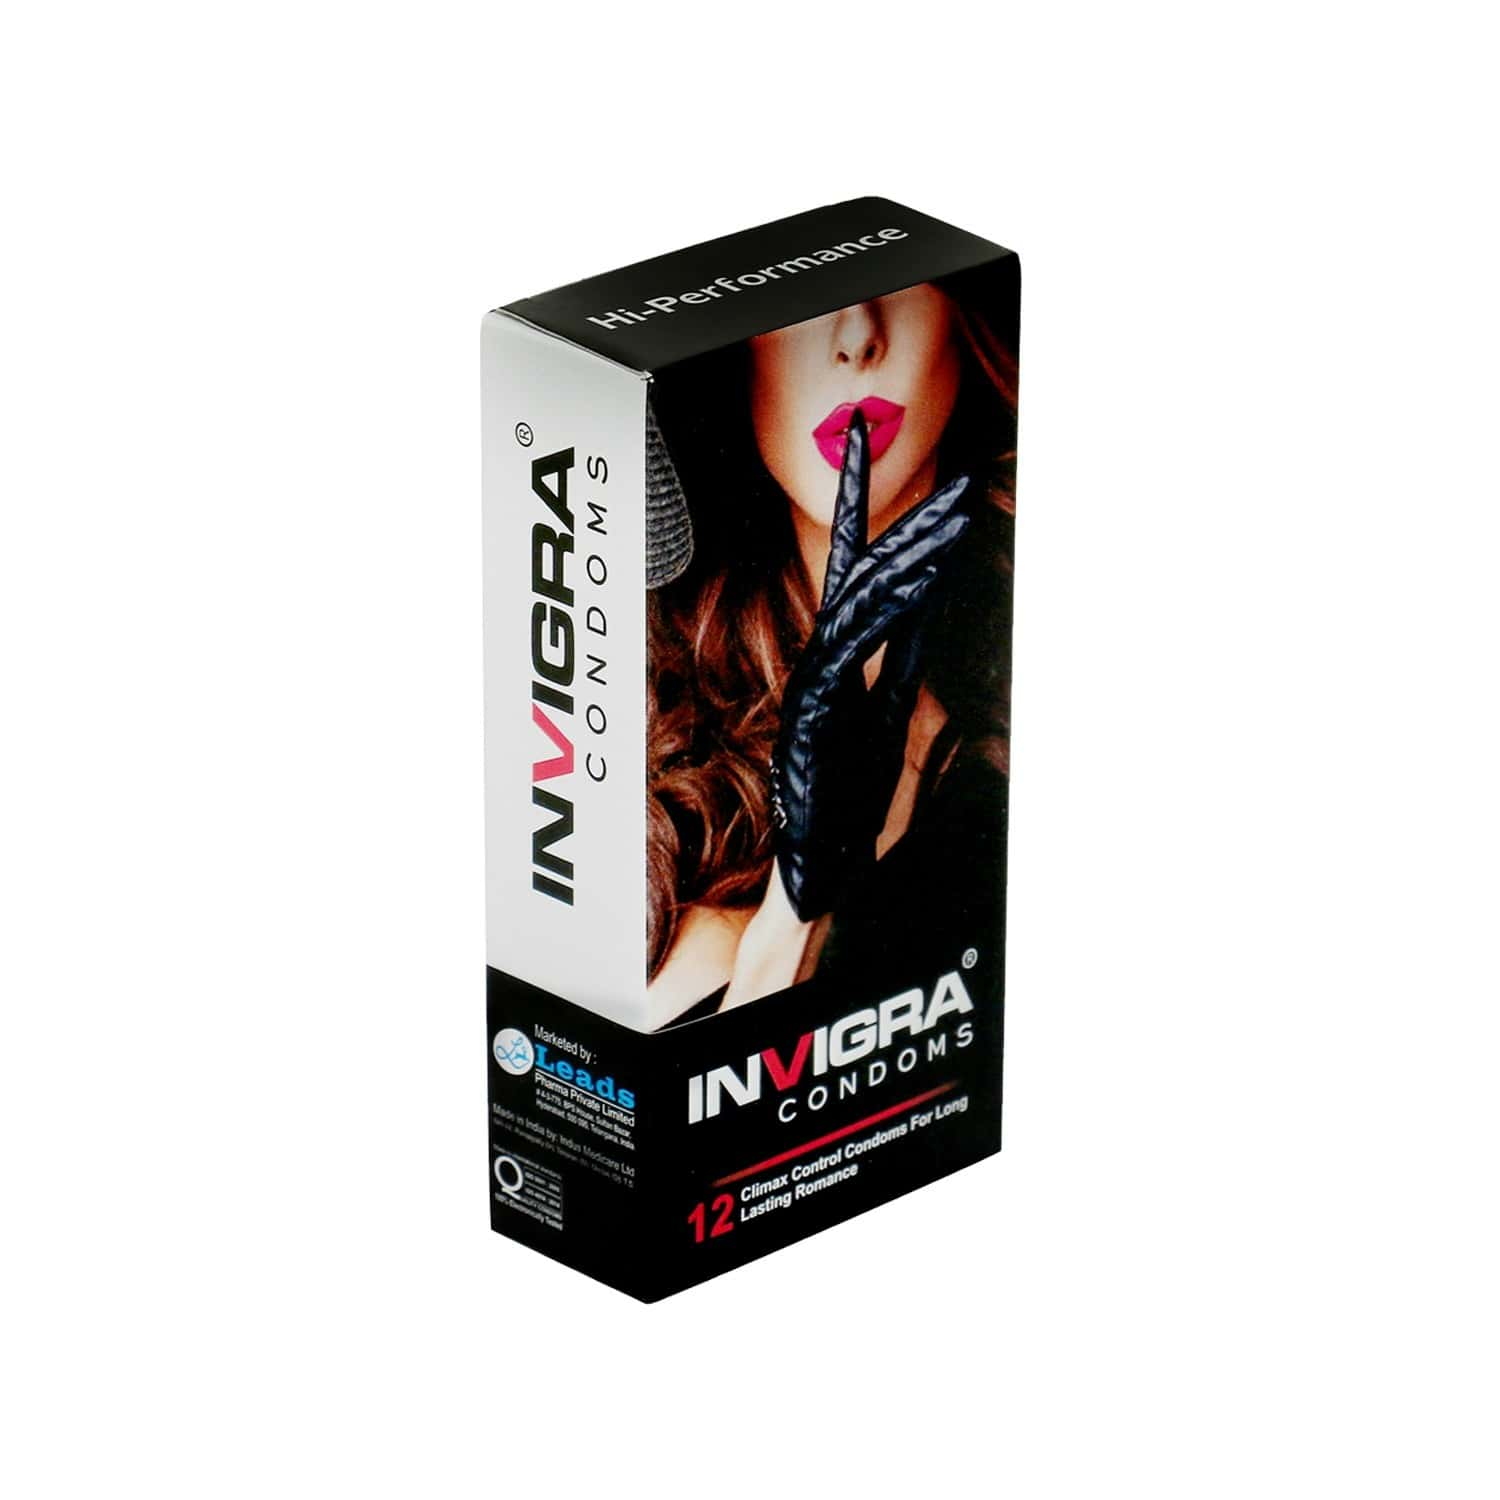 Invigra Hi Performance Condoms - 12 Condoms